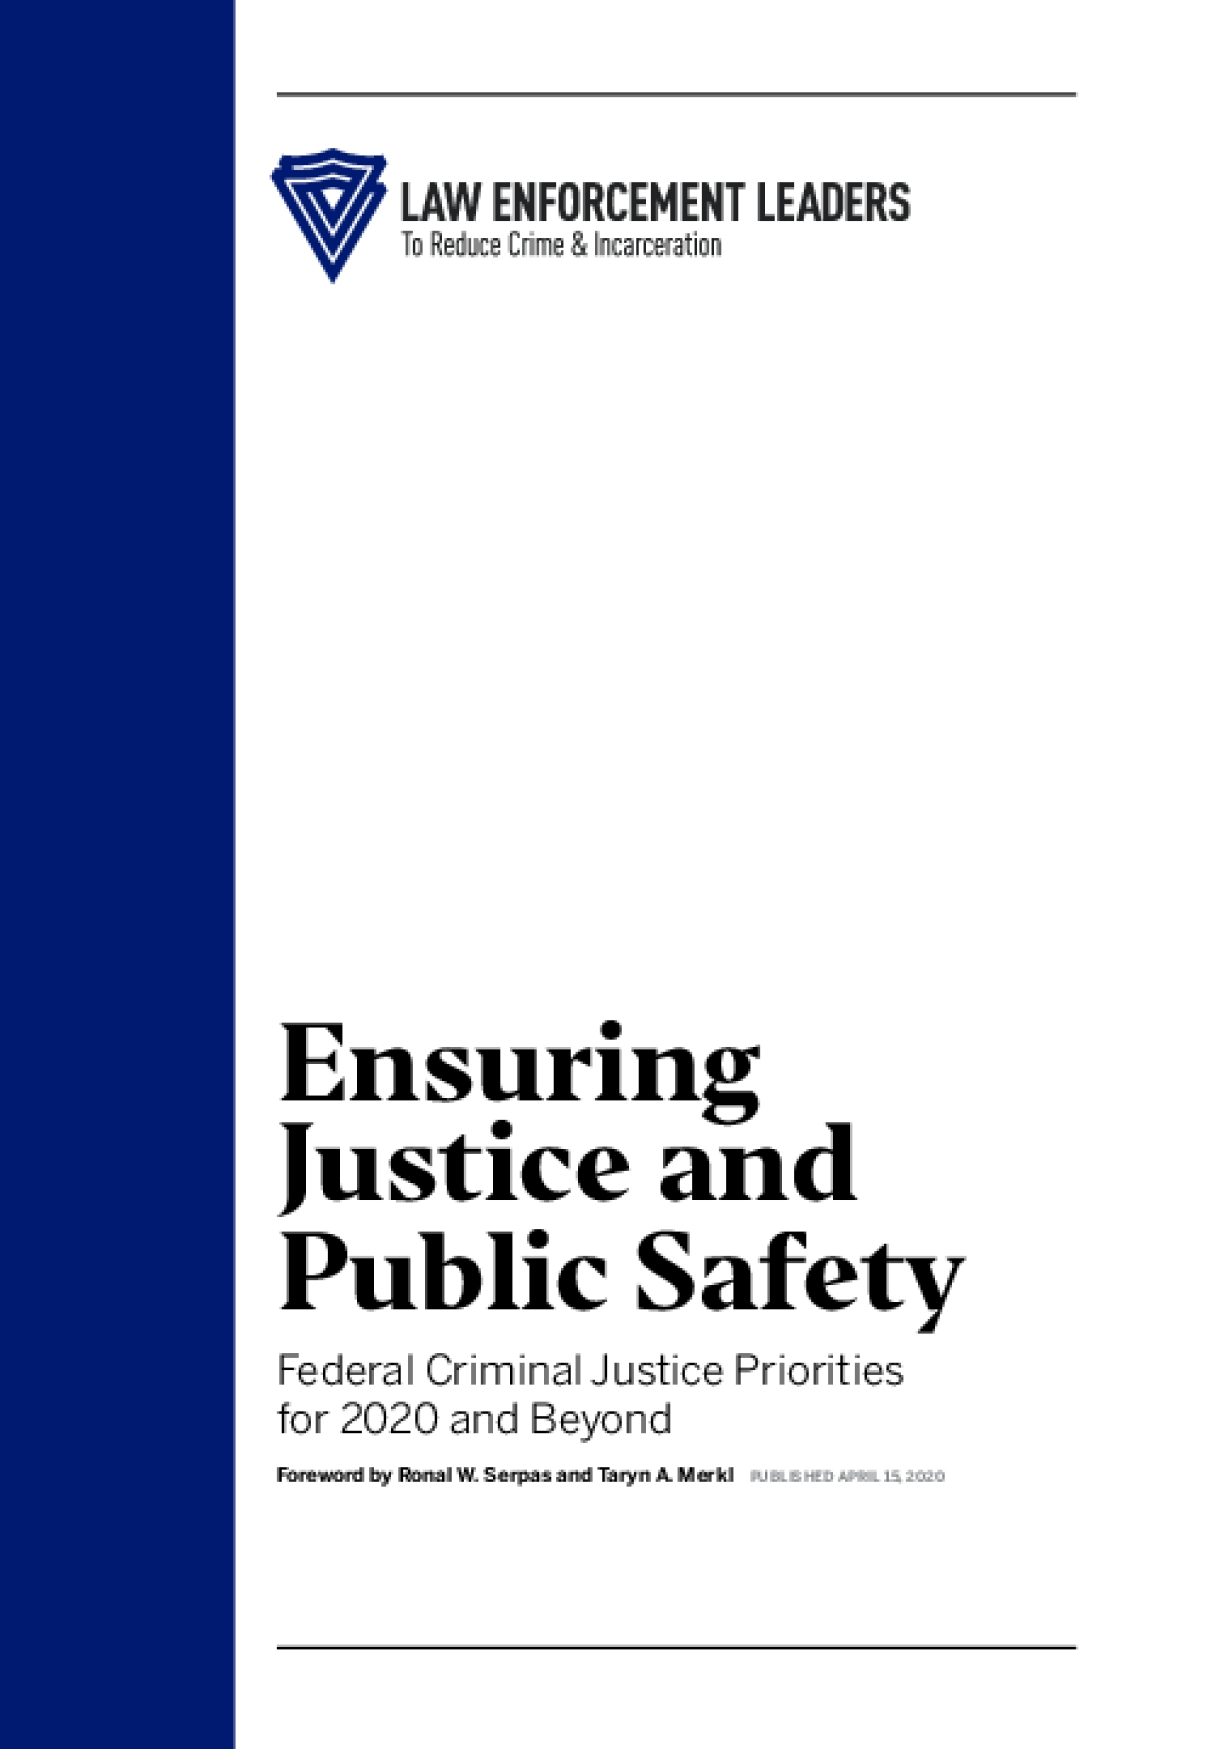 Ensuring Justice and Public Safety Federal Criminal Justice Priorities for 2020 and Beyond